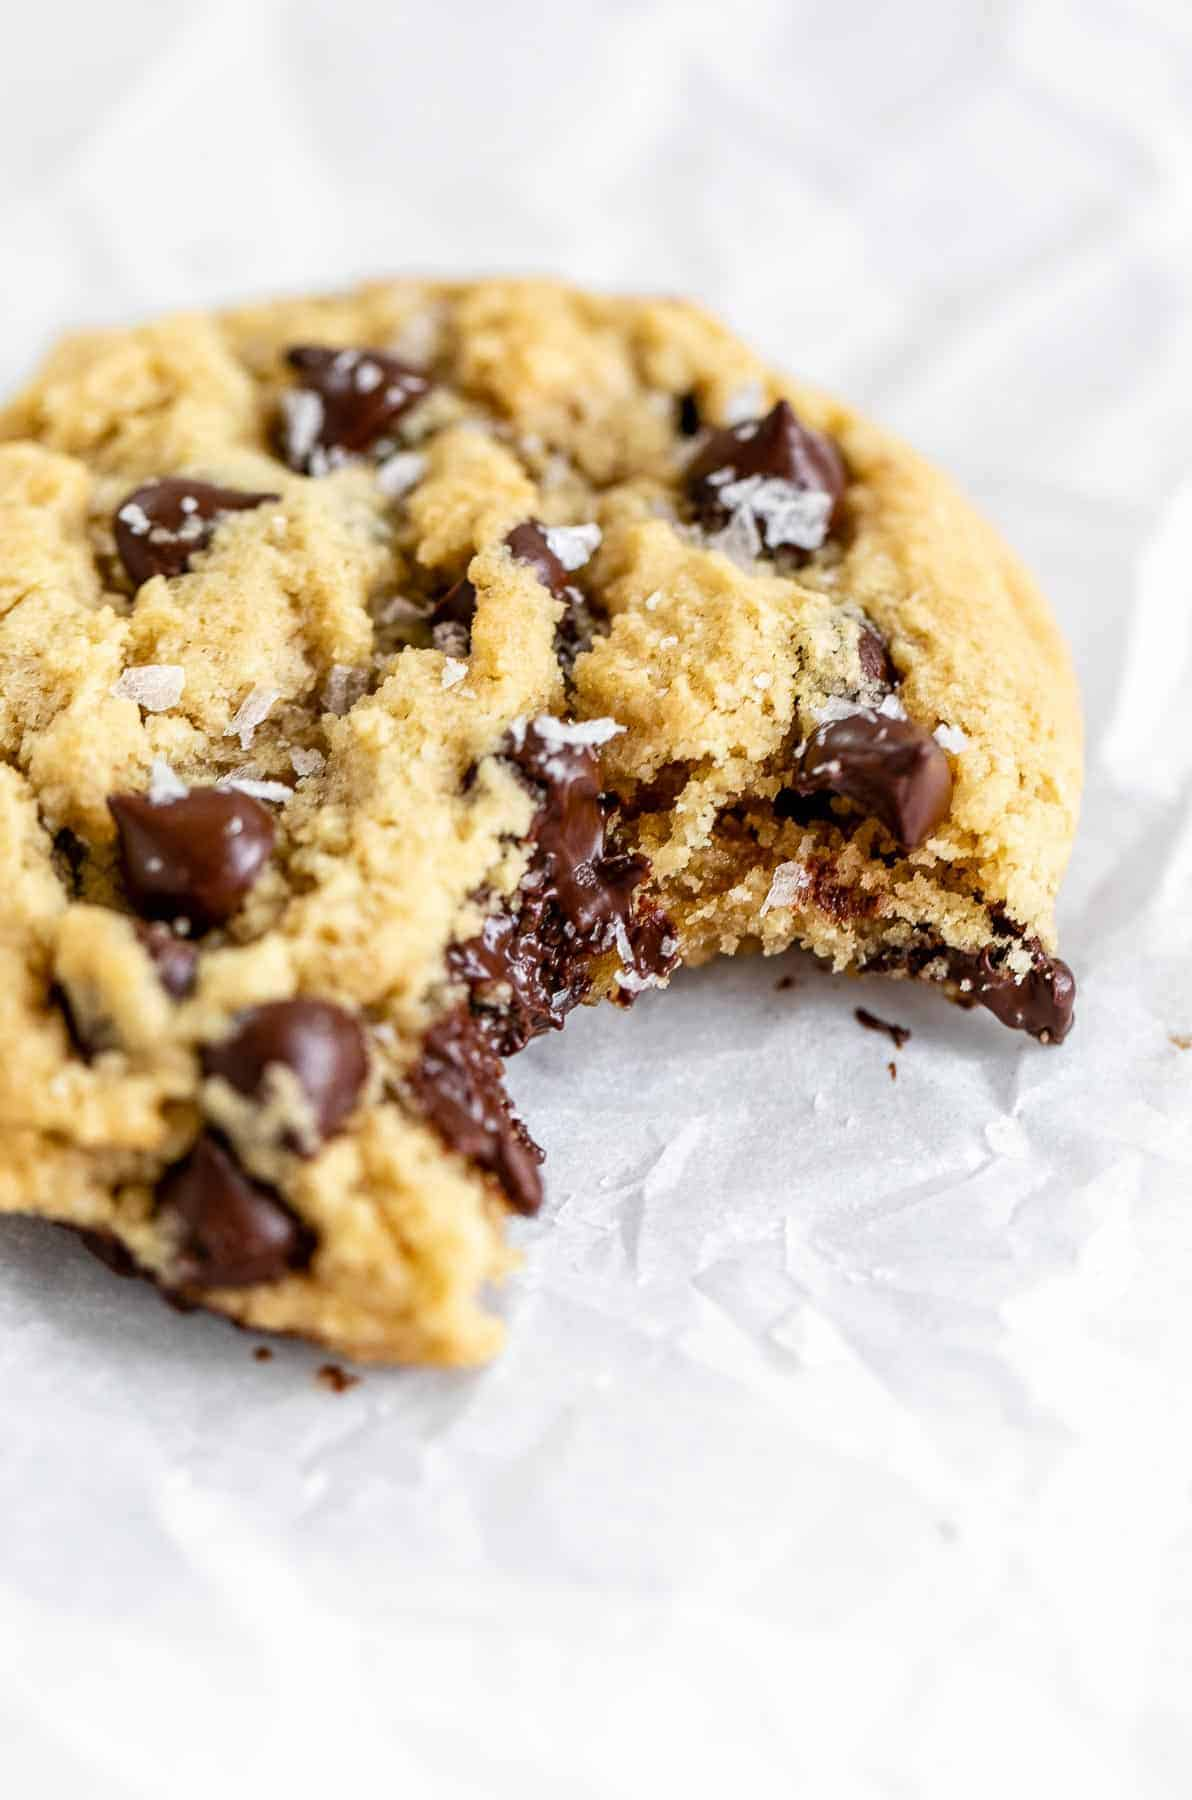 Up close image of the cookie with melted chocolate.